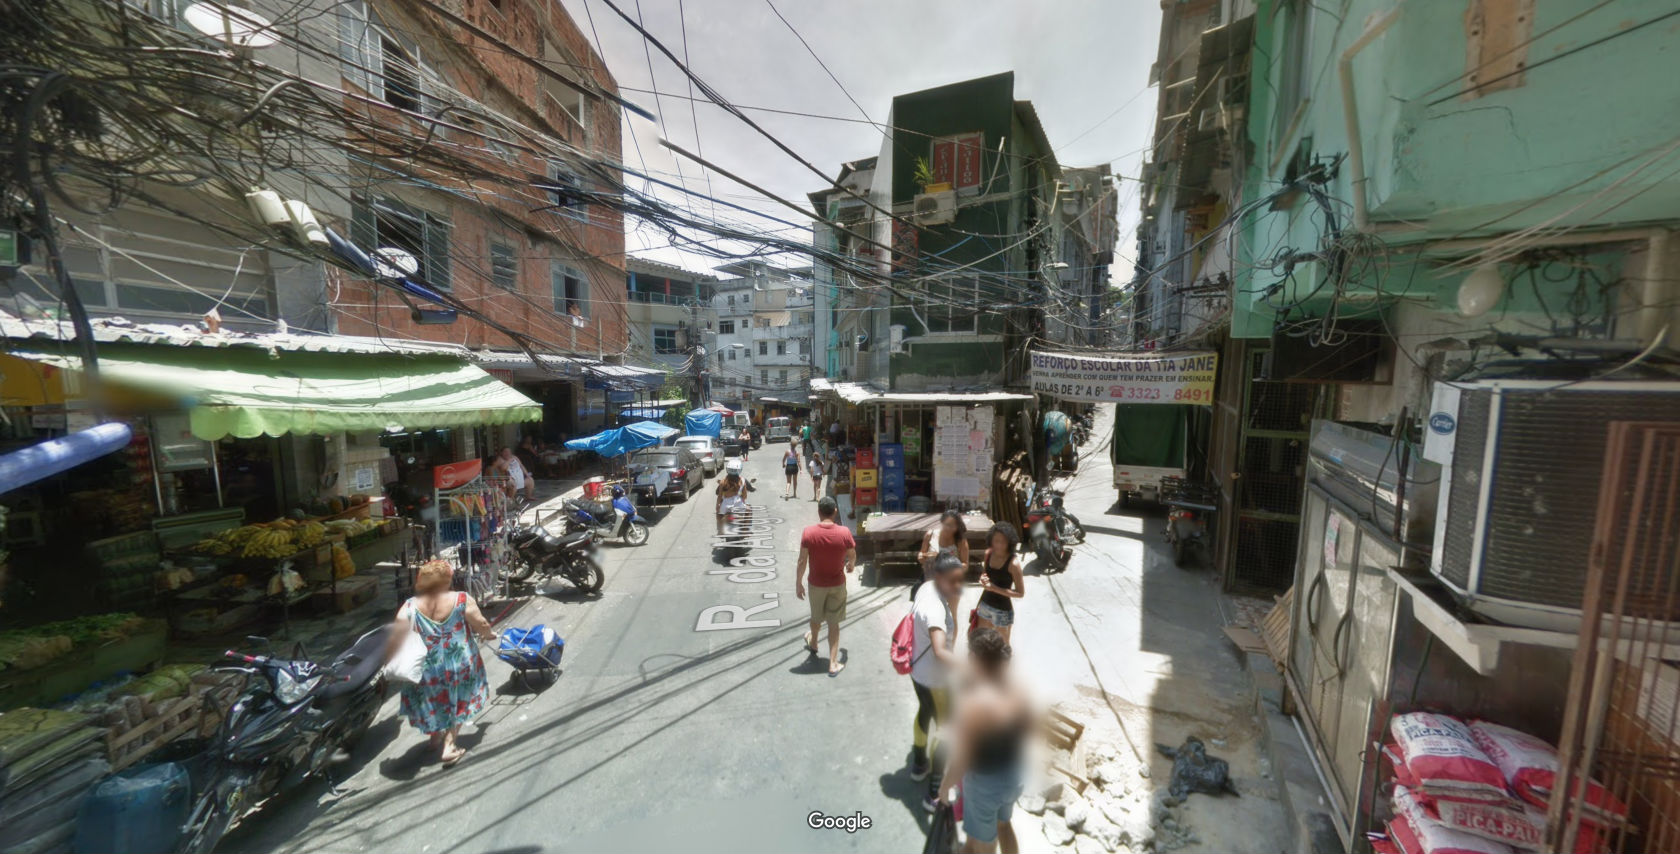 Rocinha , Rio de Janeiro, Brazil.These people are considered poor by first world standards.Why is our reaction to demolish their homes and prevent this kind of development? (Source:  Google Maps )